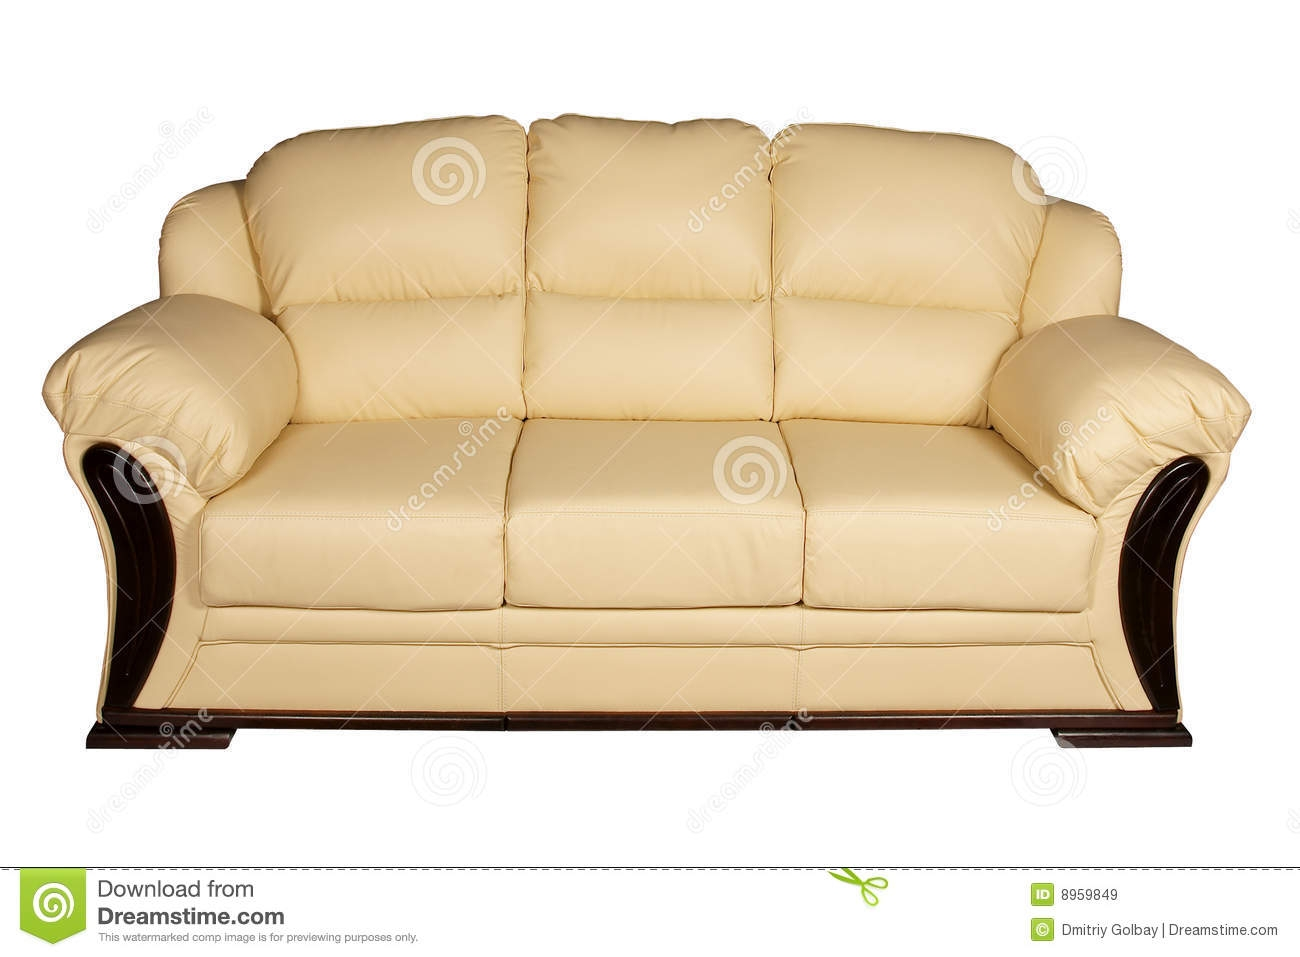 Sofas Center Cream Colored Leather Sofa Alluring Jpg Home Inside Cream Colored Sofas (#8 of 12)